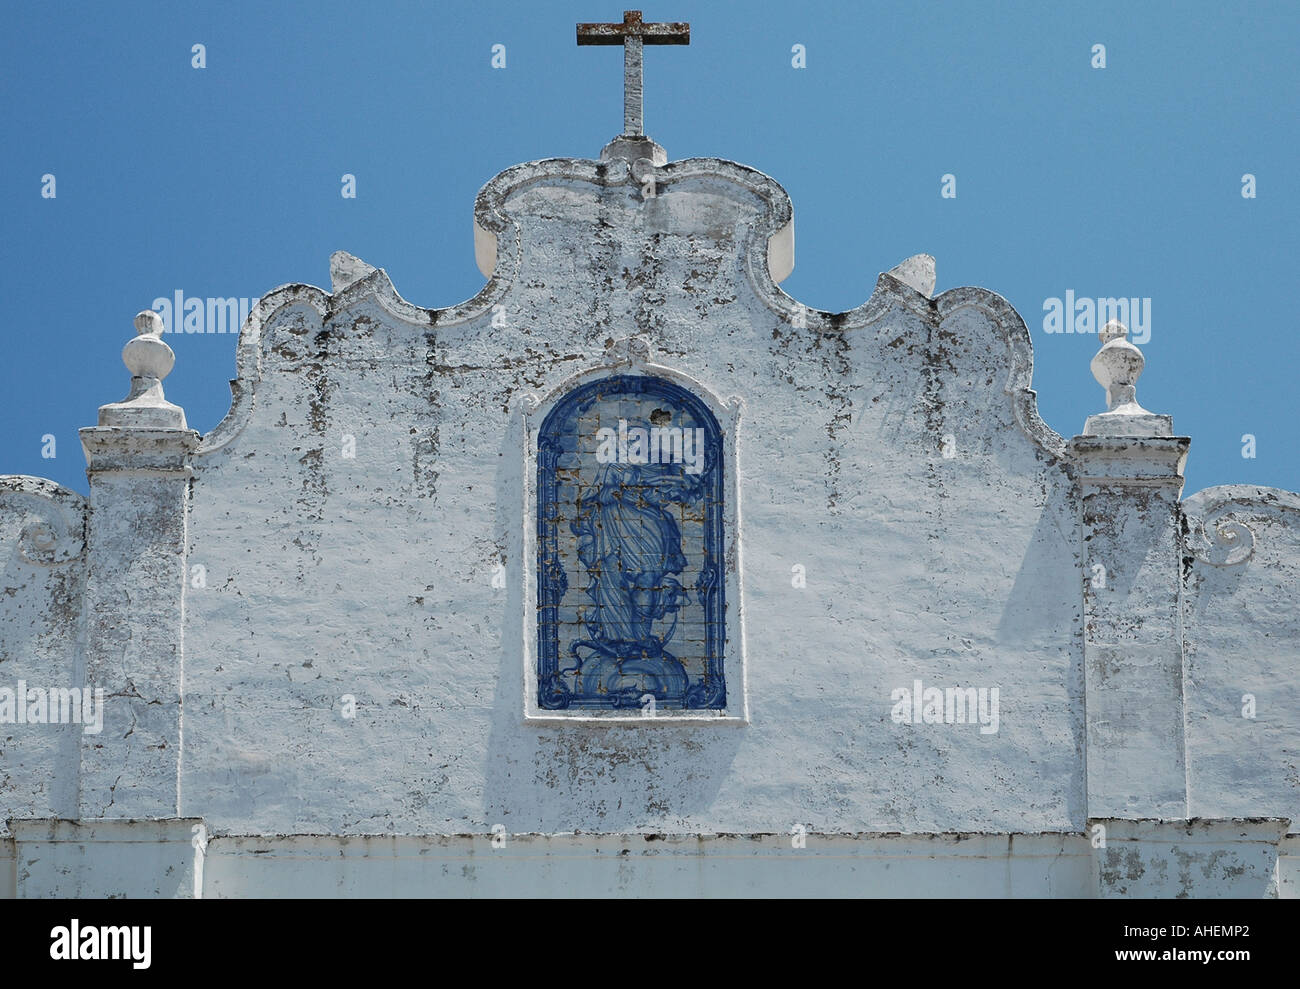 Keramische Fliesen Fassade Portugal Travel Azulejo Mural Stockfotos And Portugal Travel